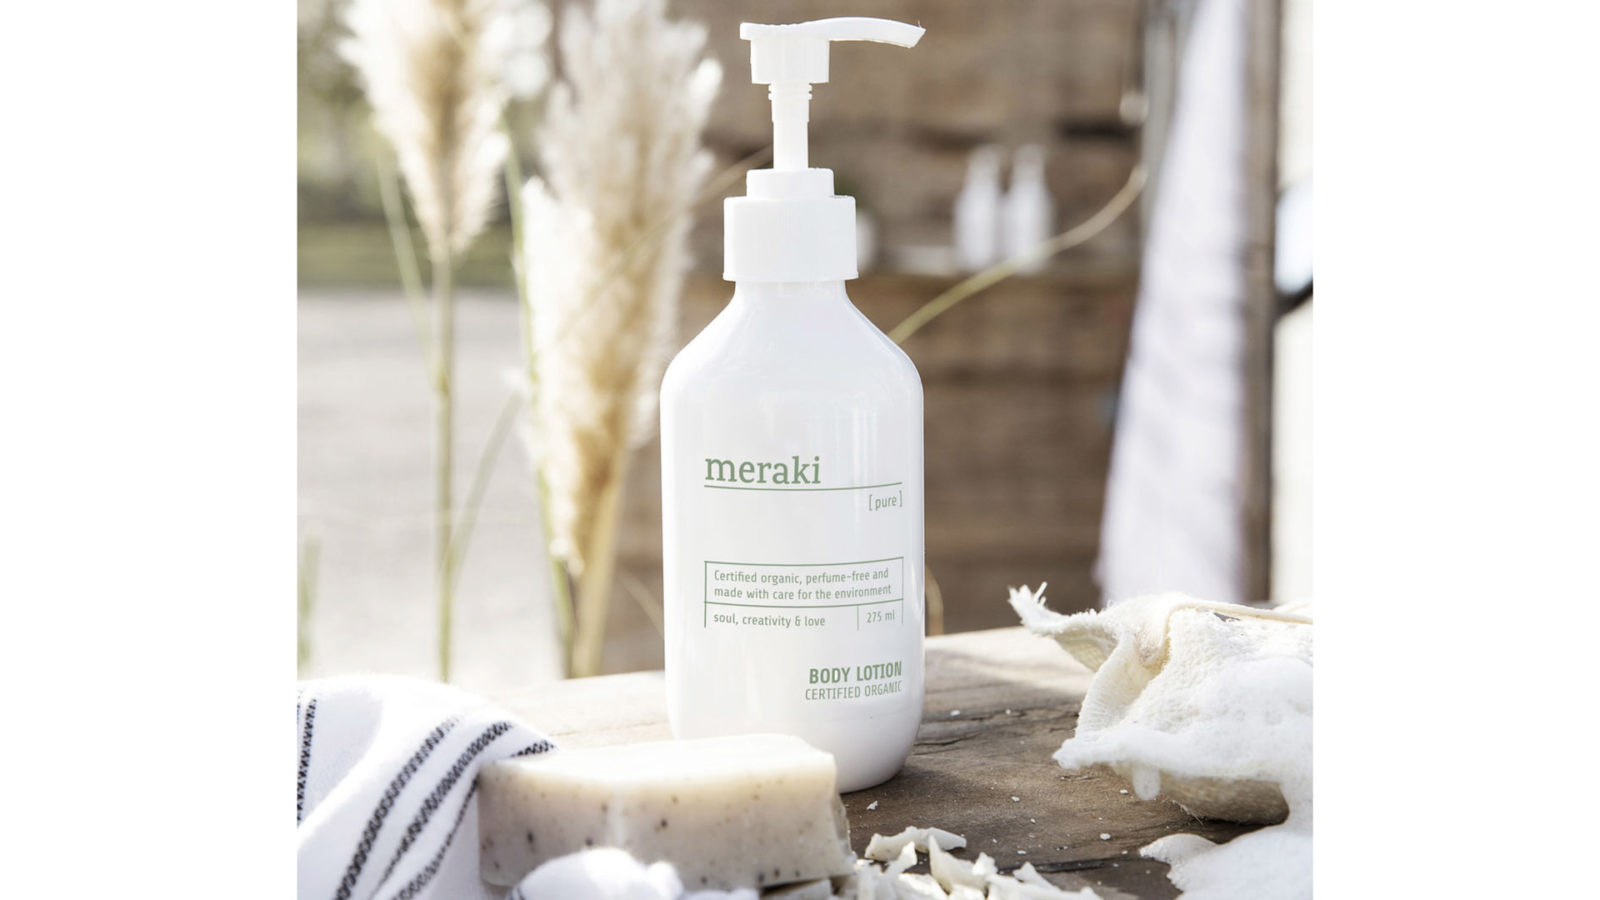 Meraki certified organic, perfume and paraben free body-lotion